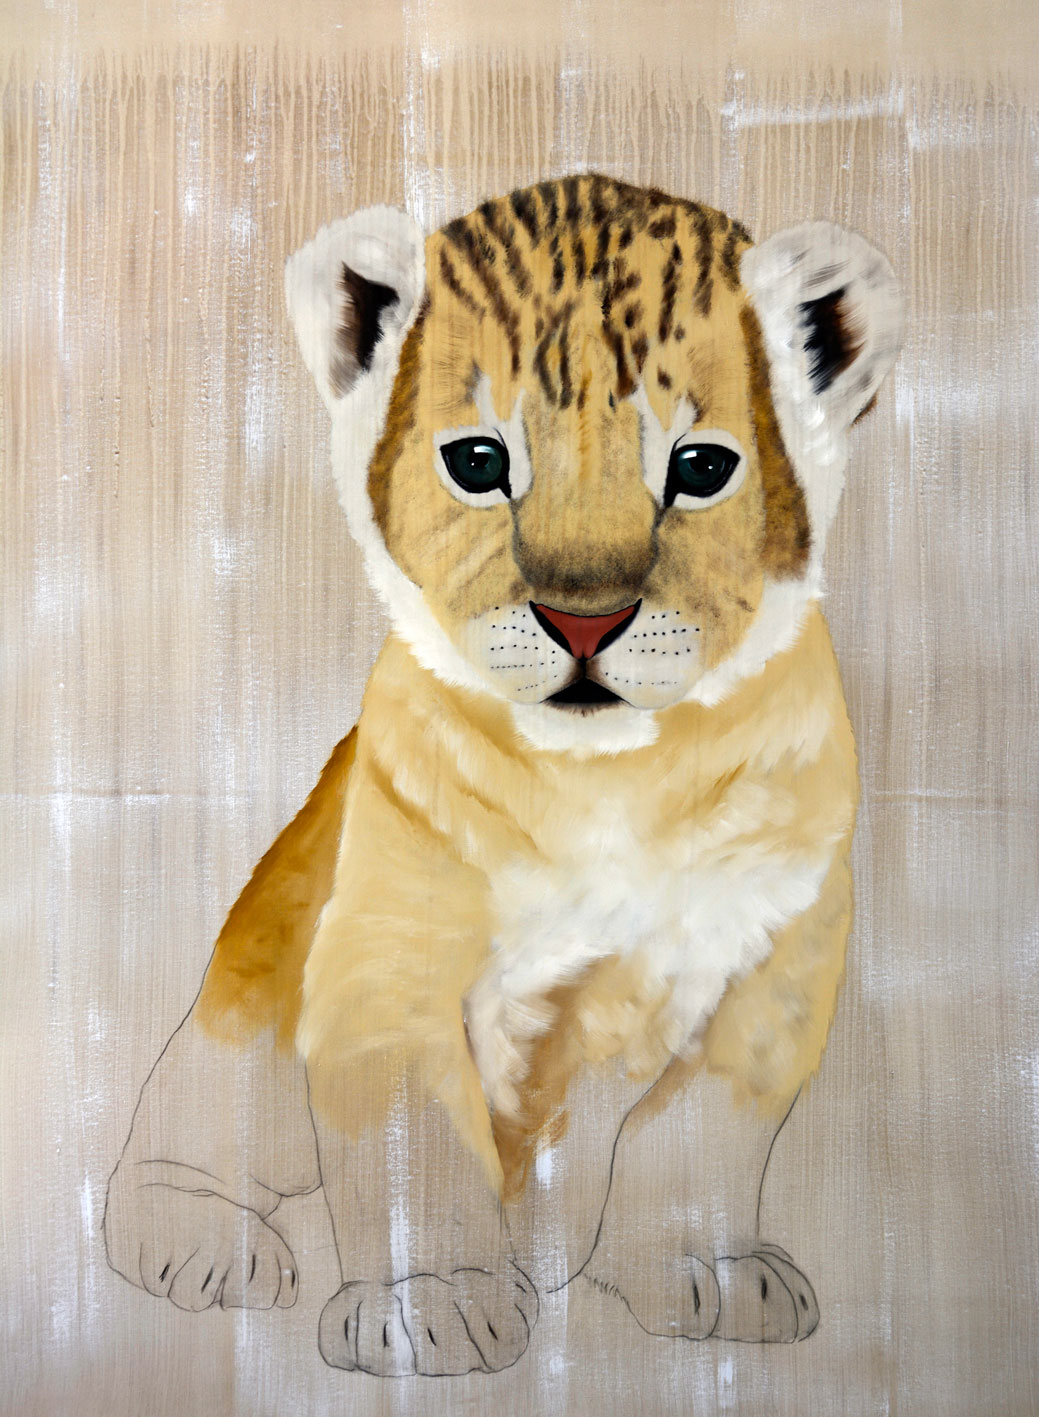 Delete-2018-Singapore.jpg panthera-leo-lion-cub-delete-threatened-endangered-extinction-animal-painting Thierry Bisch Contemporary painter animals painting art  nature biodiversity conservation